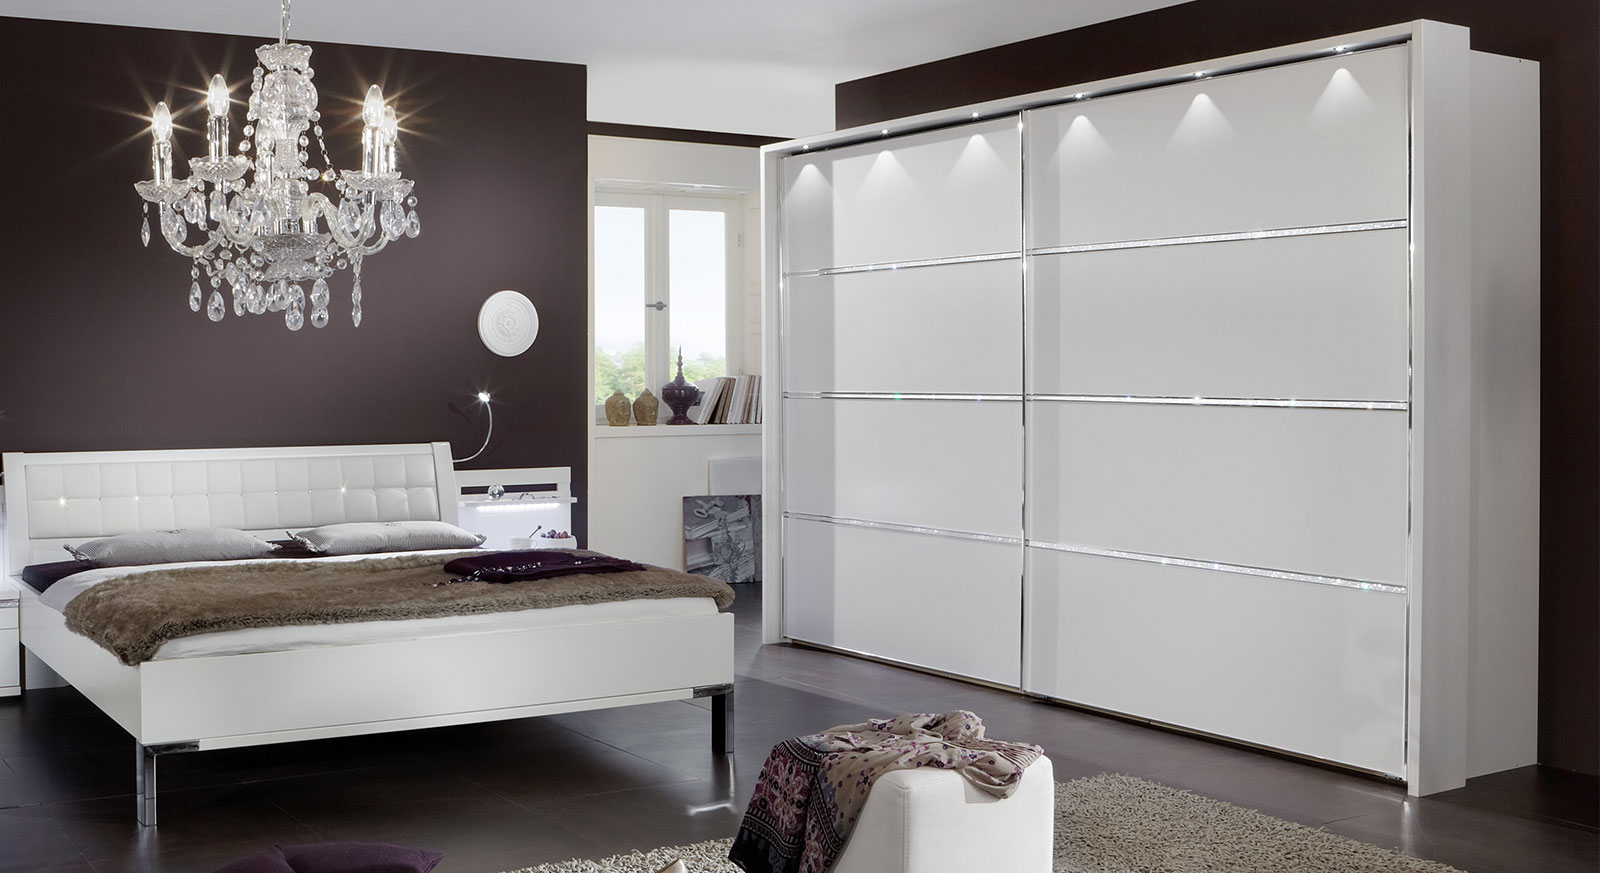 kleiderschrank passende kommode. Black Bedroom Furniture Sets. Home Design Ideas